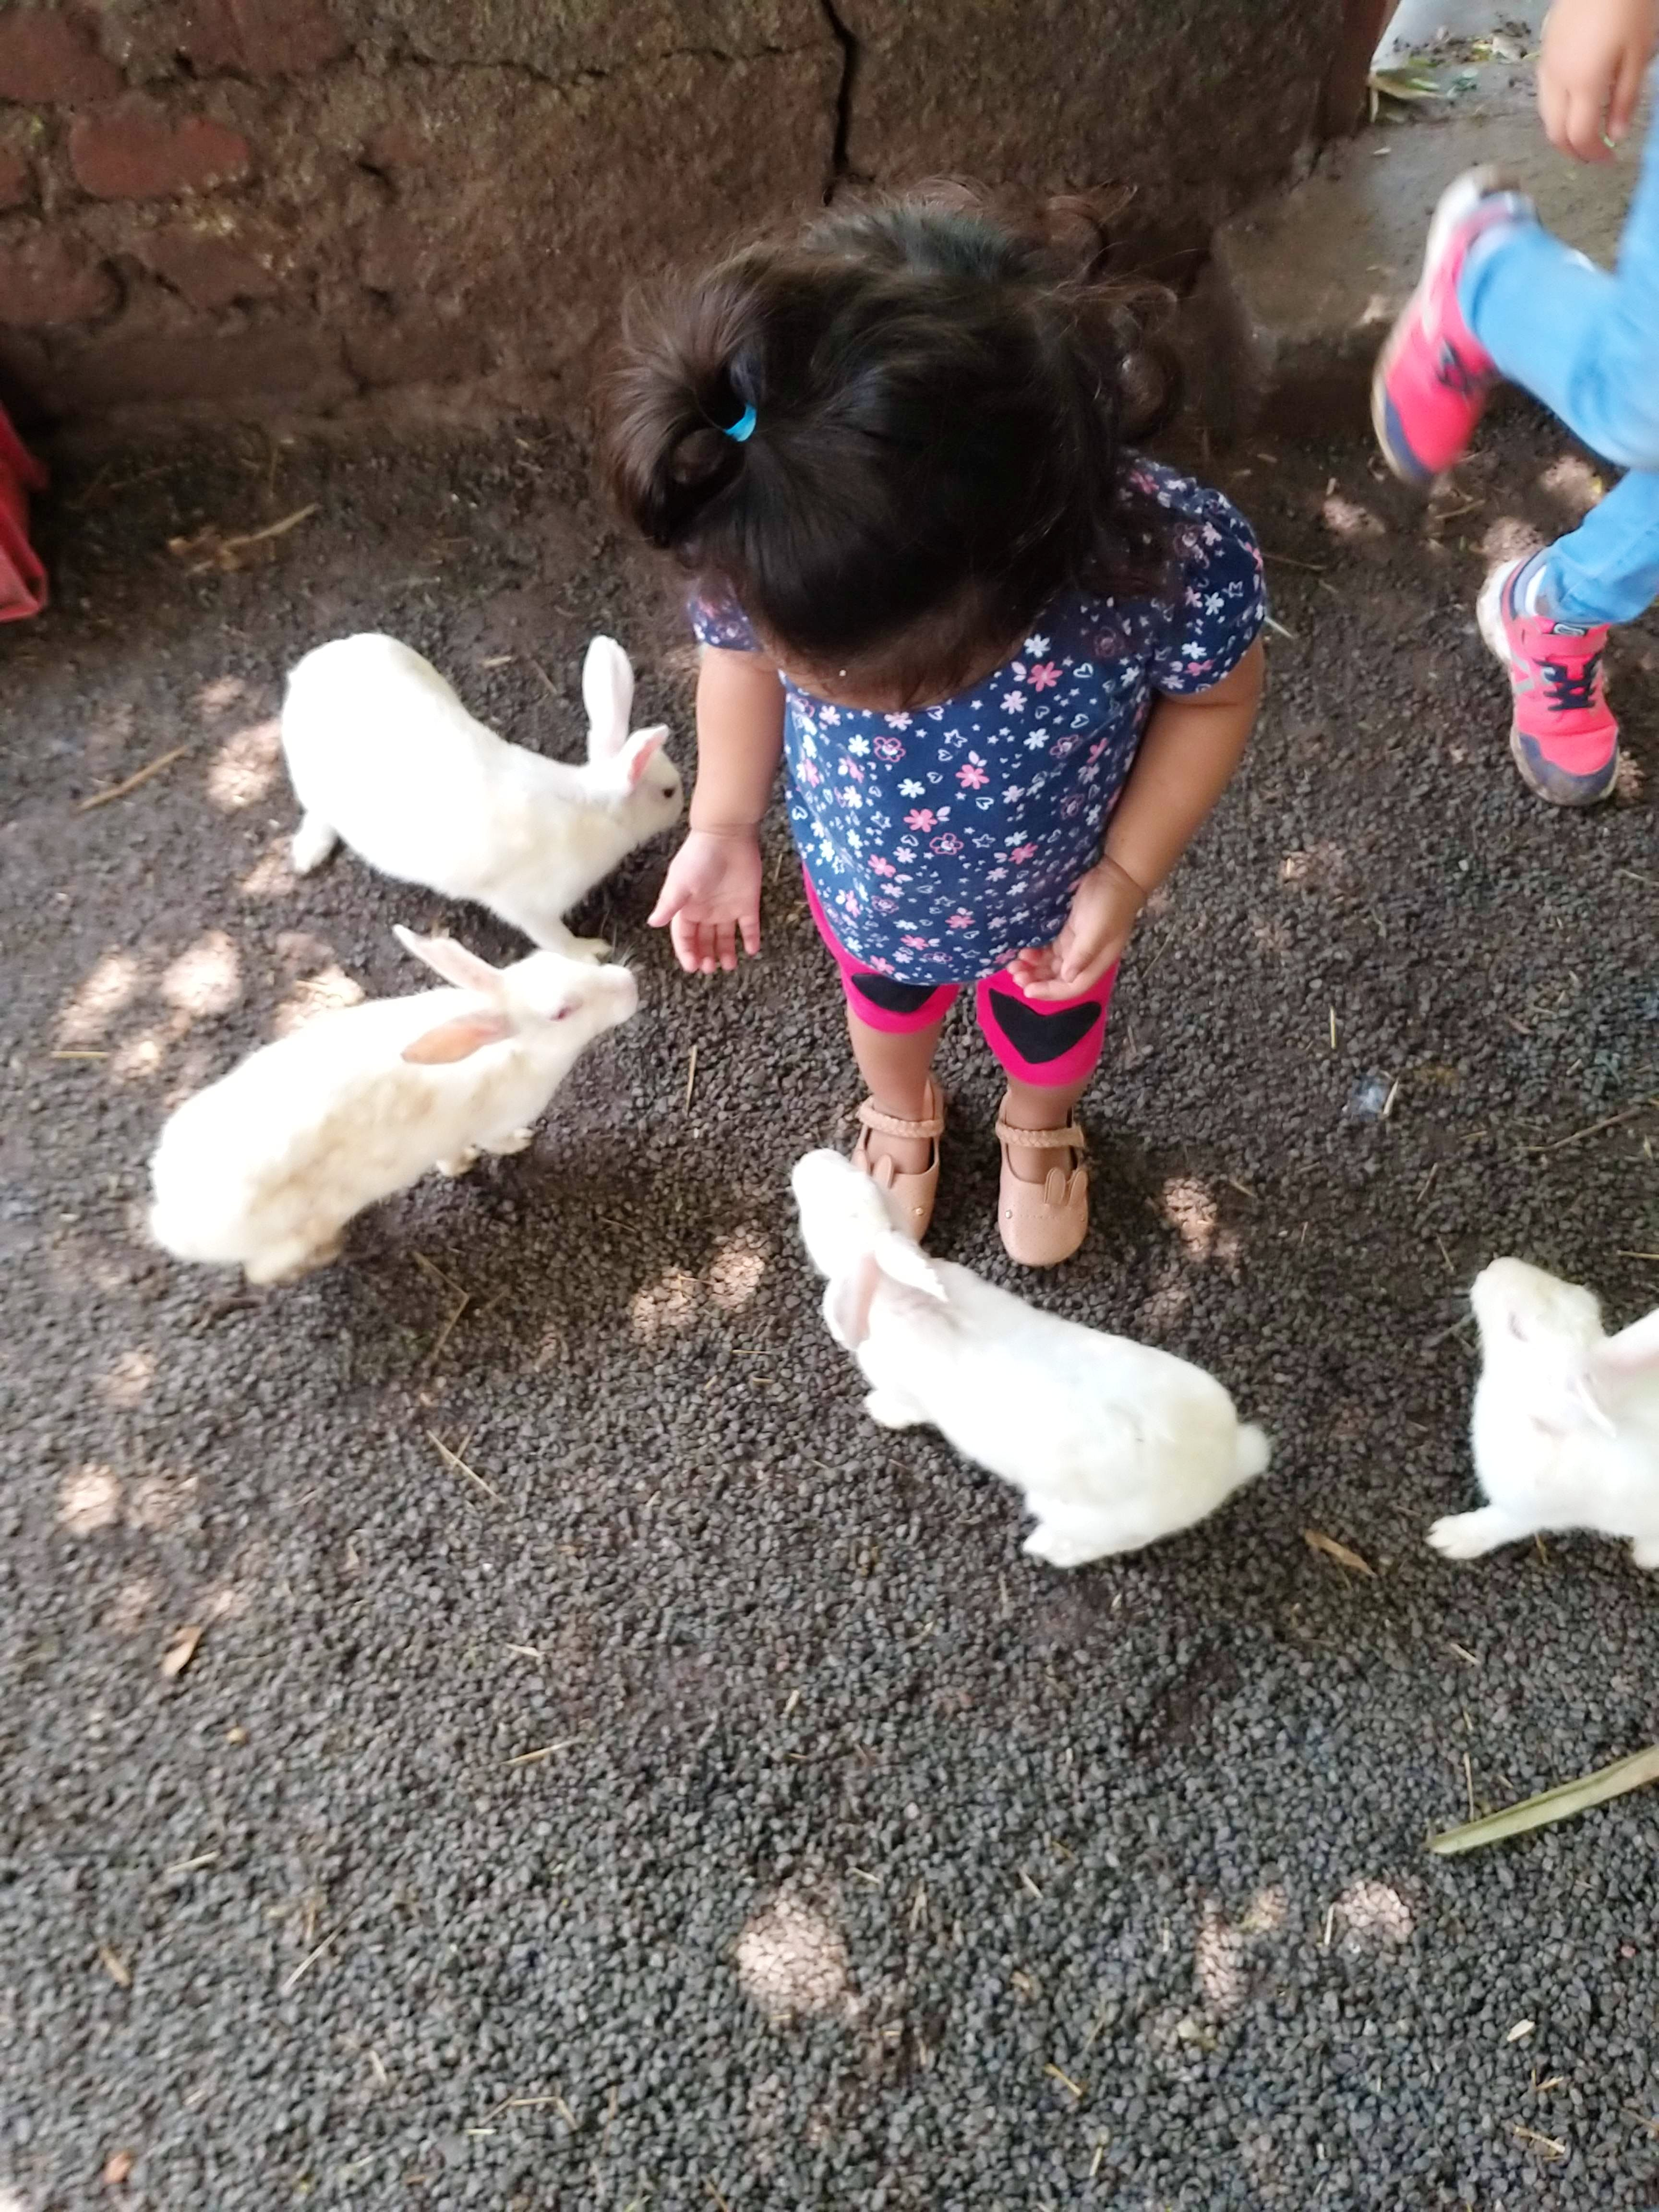 Kids Will Fall In Love With Both Animals And Nature At This Farm